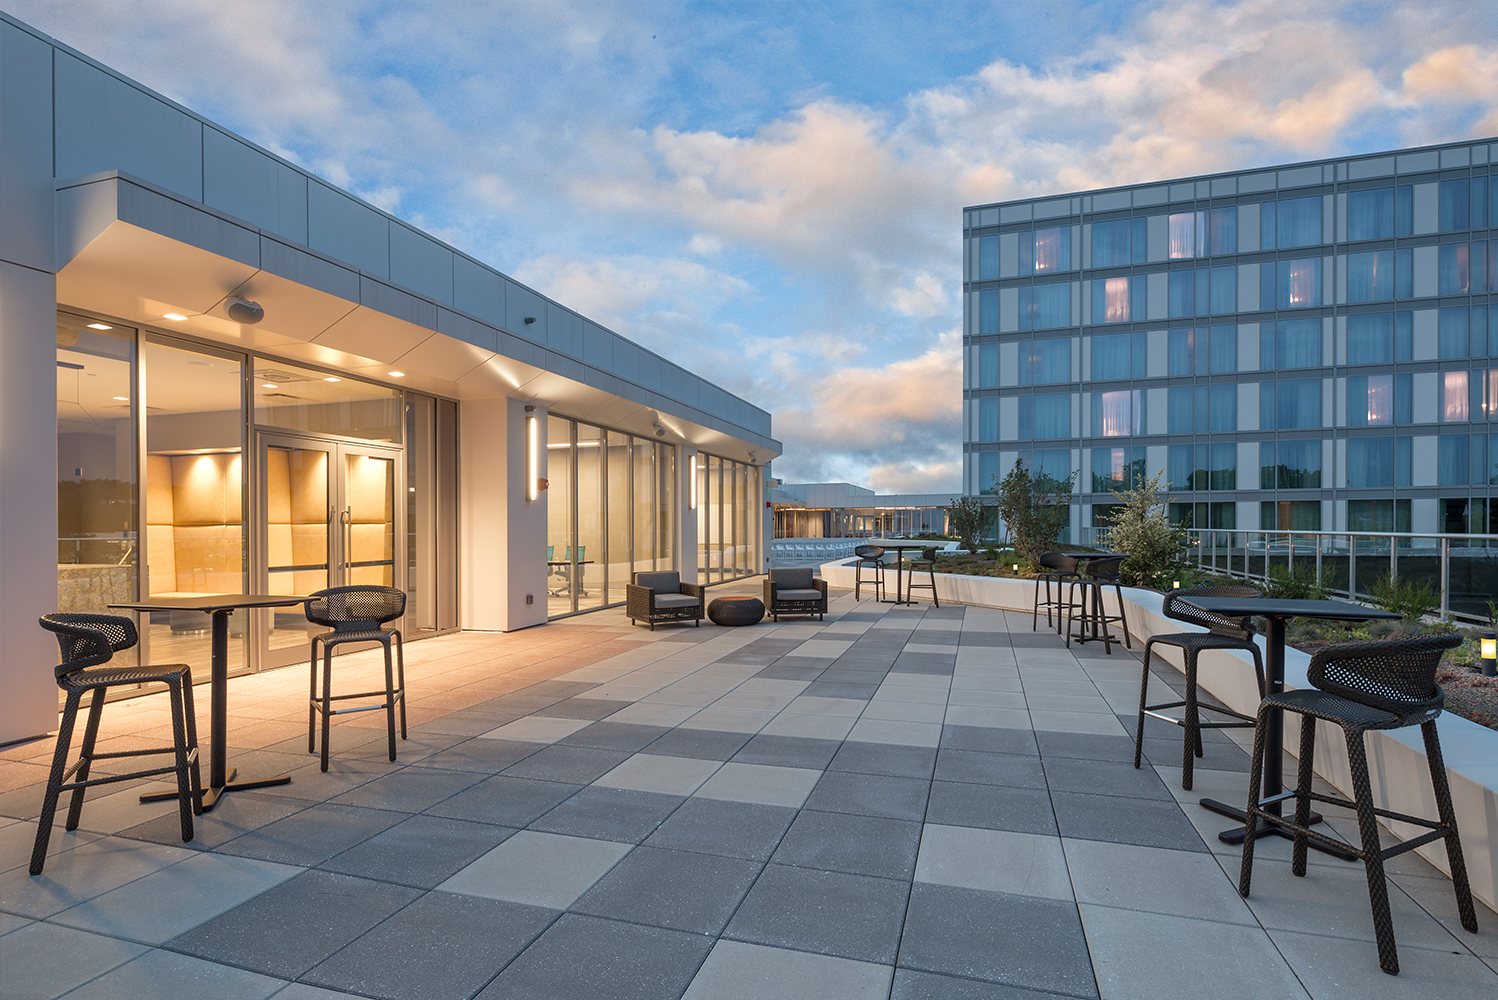 Hirsch Bedner Associates (HBA) completed the design of The Summit, a Dolce Hotel by Wyndham in the Madisonville neighborhood of Cincinnati, Ohio.